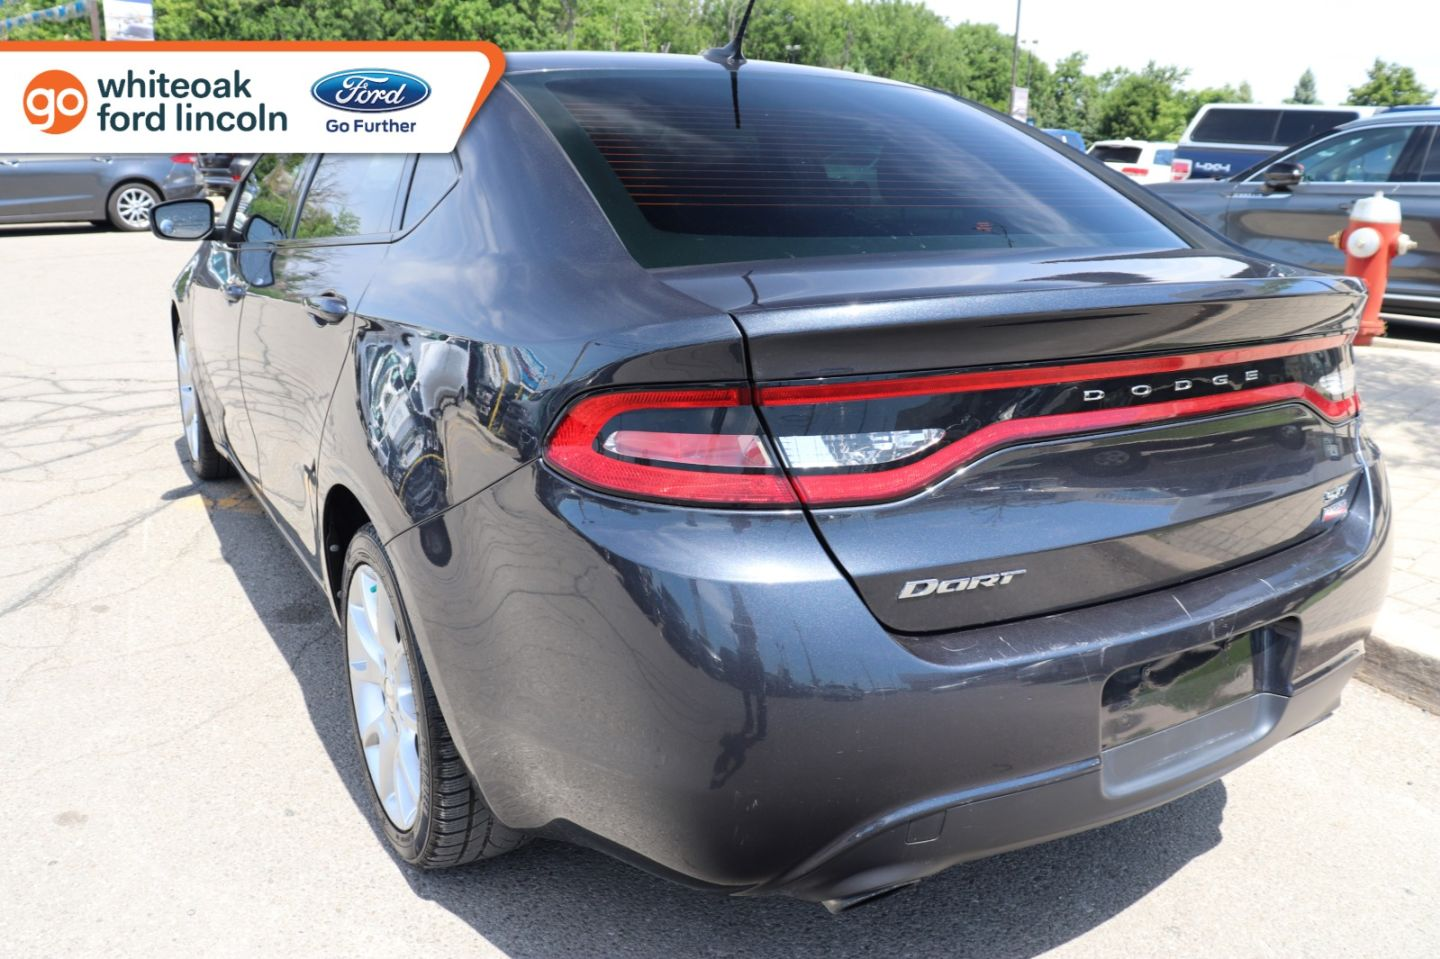 2013 Dodge Dart SXT for sale in Mississauga, Ontario